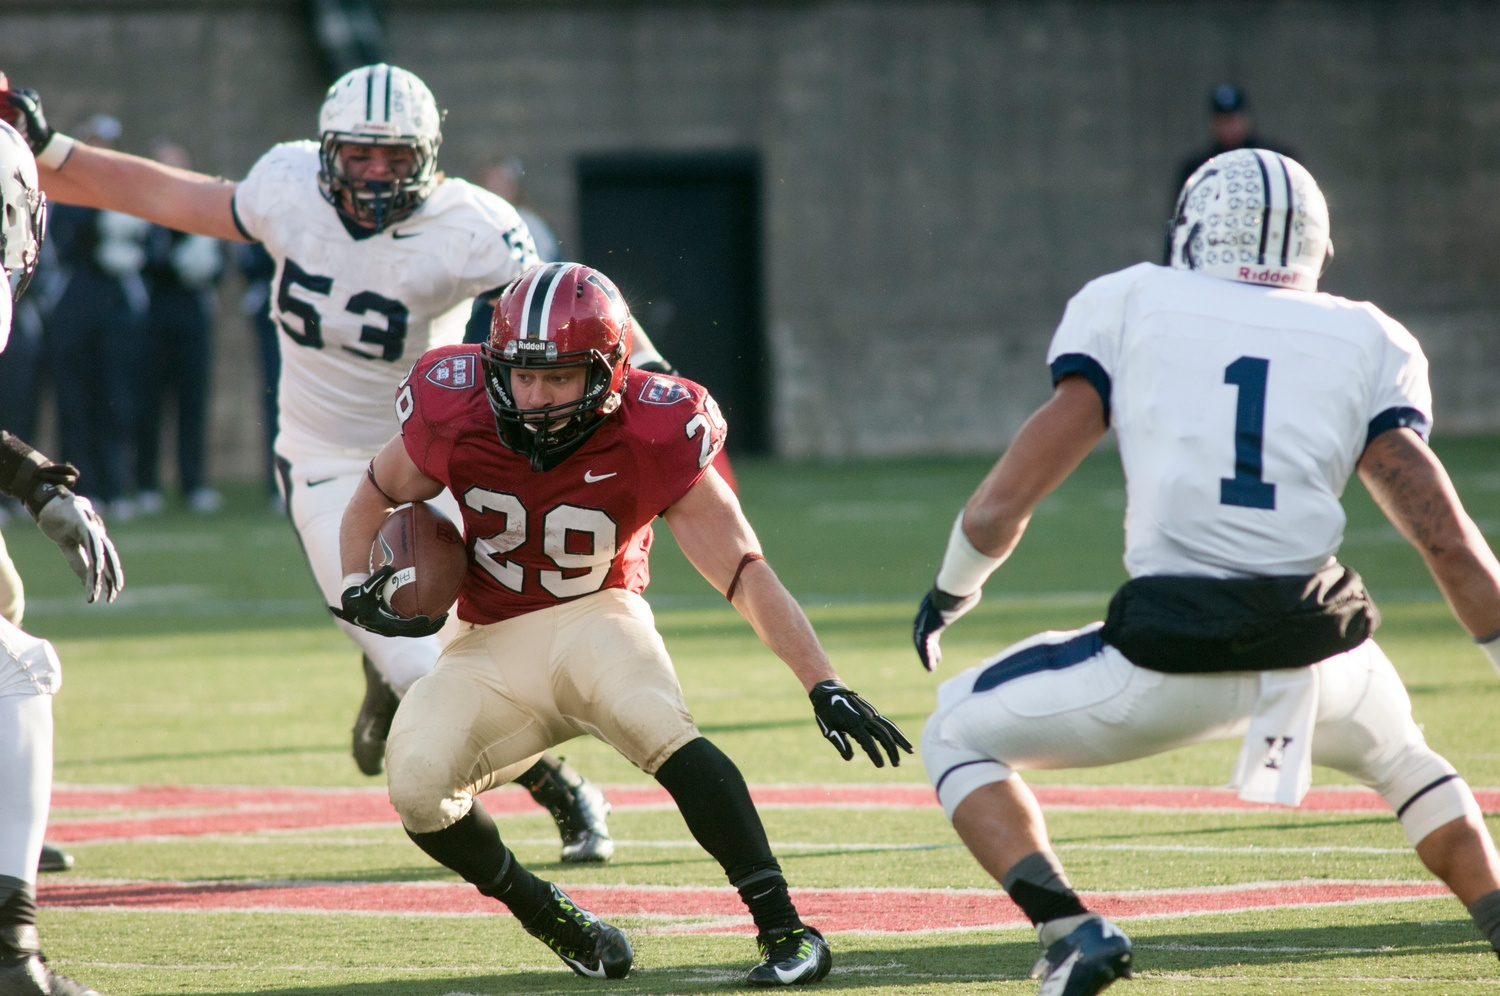 Junior Paul Stanton carried an often injured Harvard offense this season, helping the team achieve an undefeated season and yet another Ivy League title.